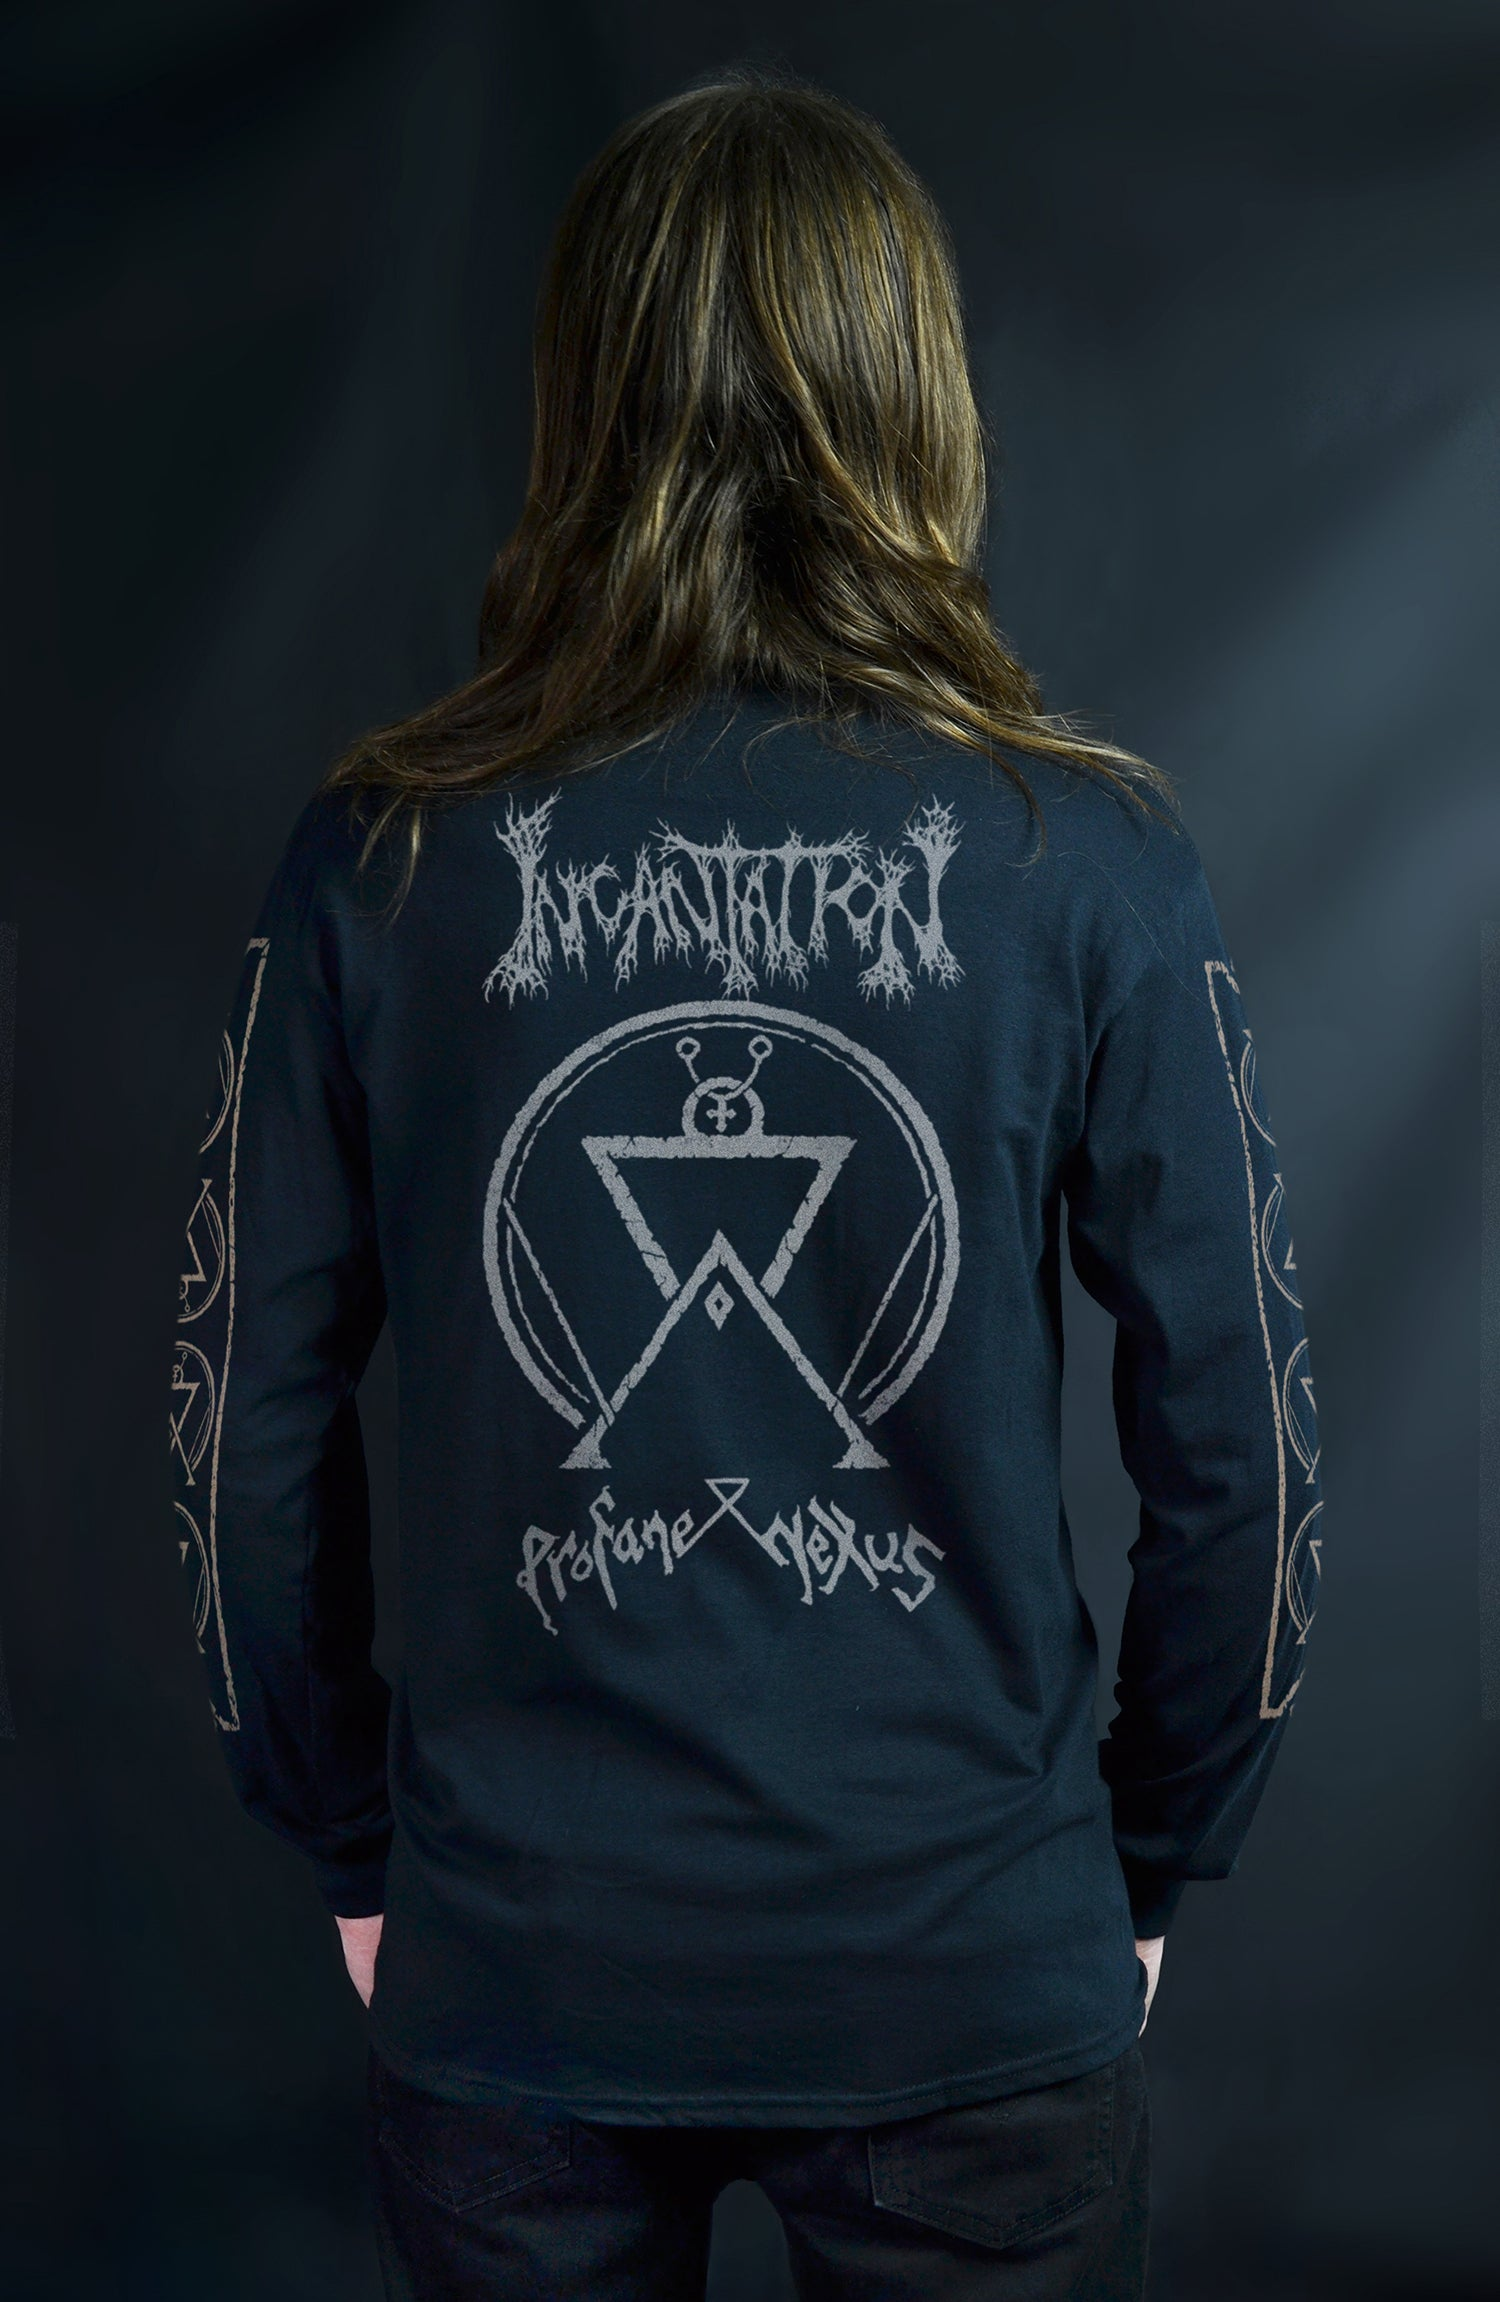 INCANTATION - Profane Nexus (LONG SLEEVE)